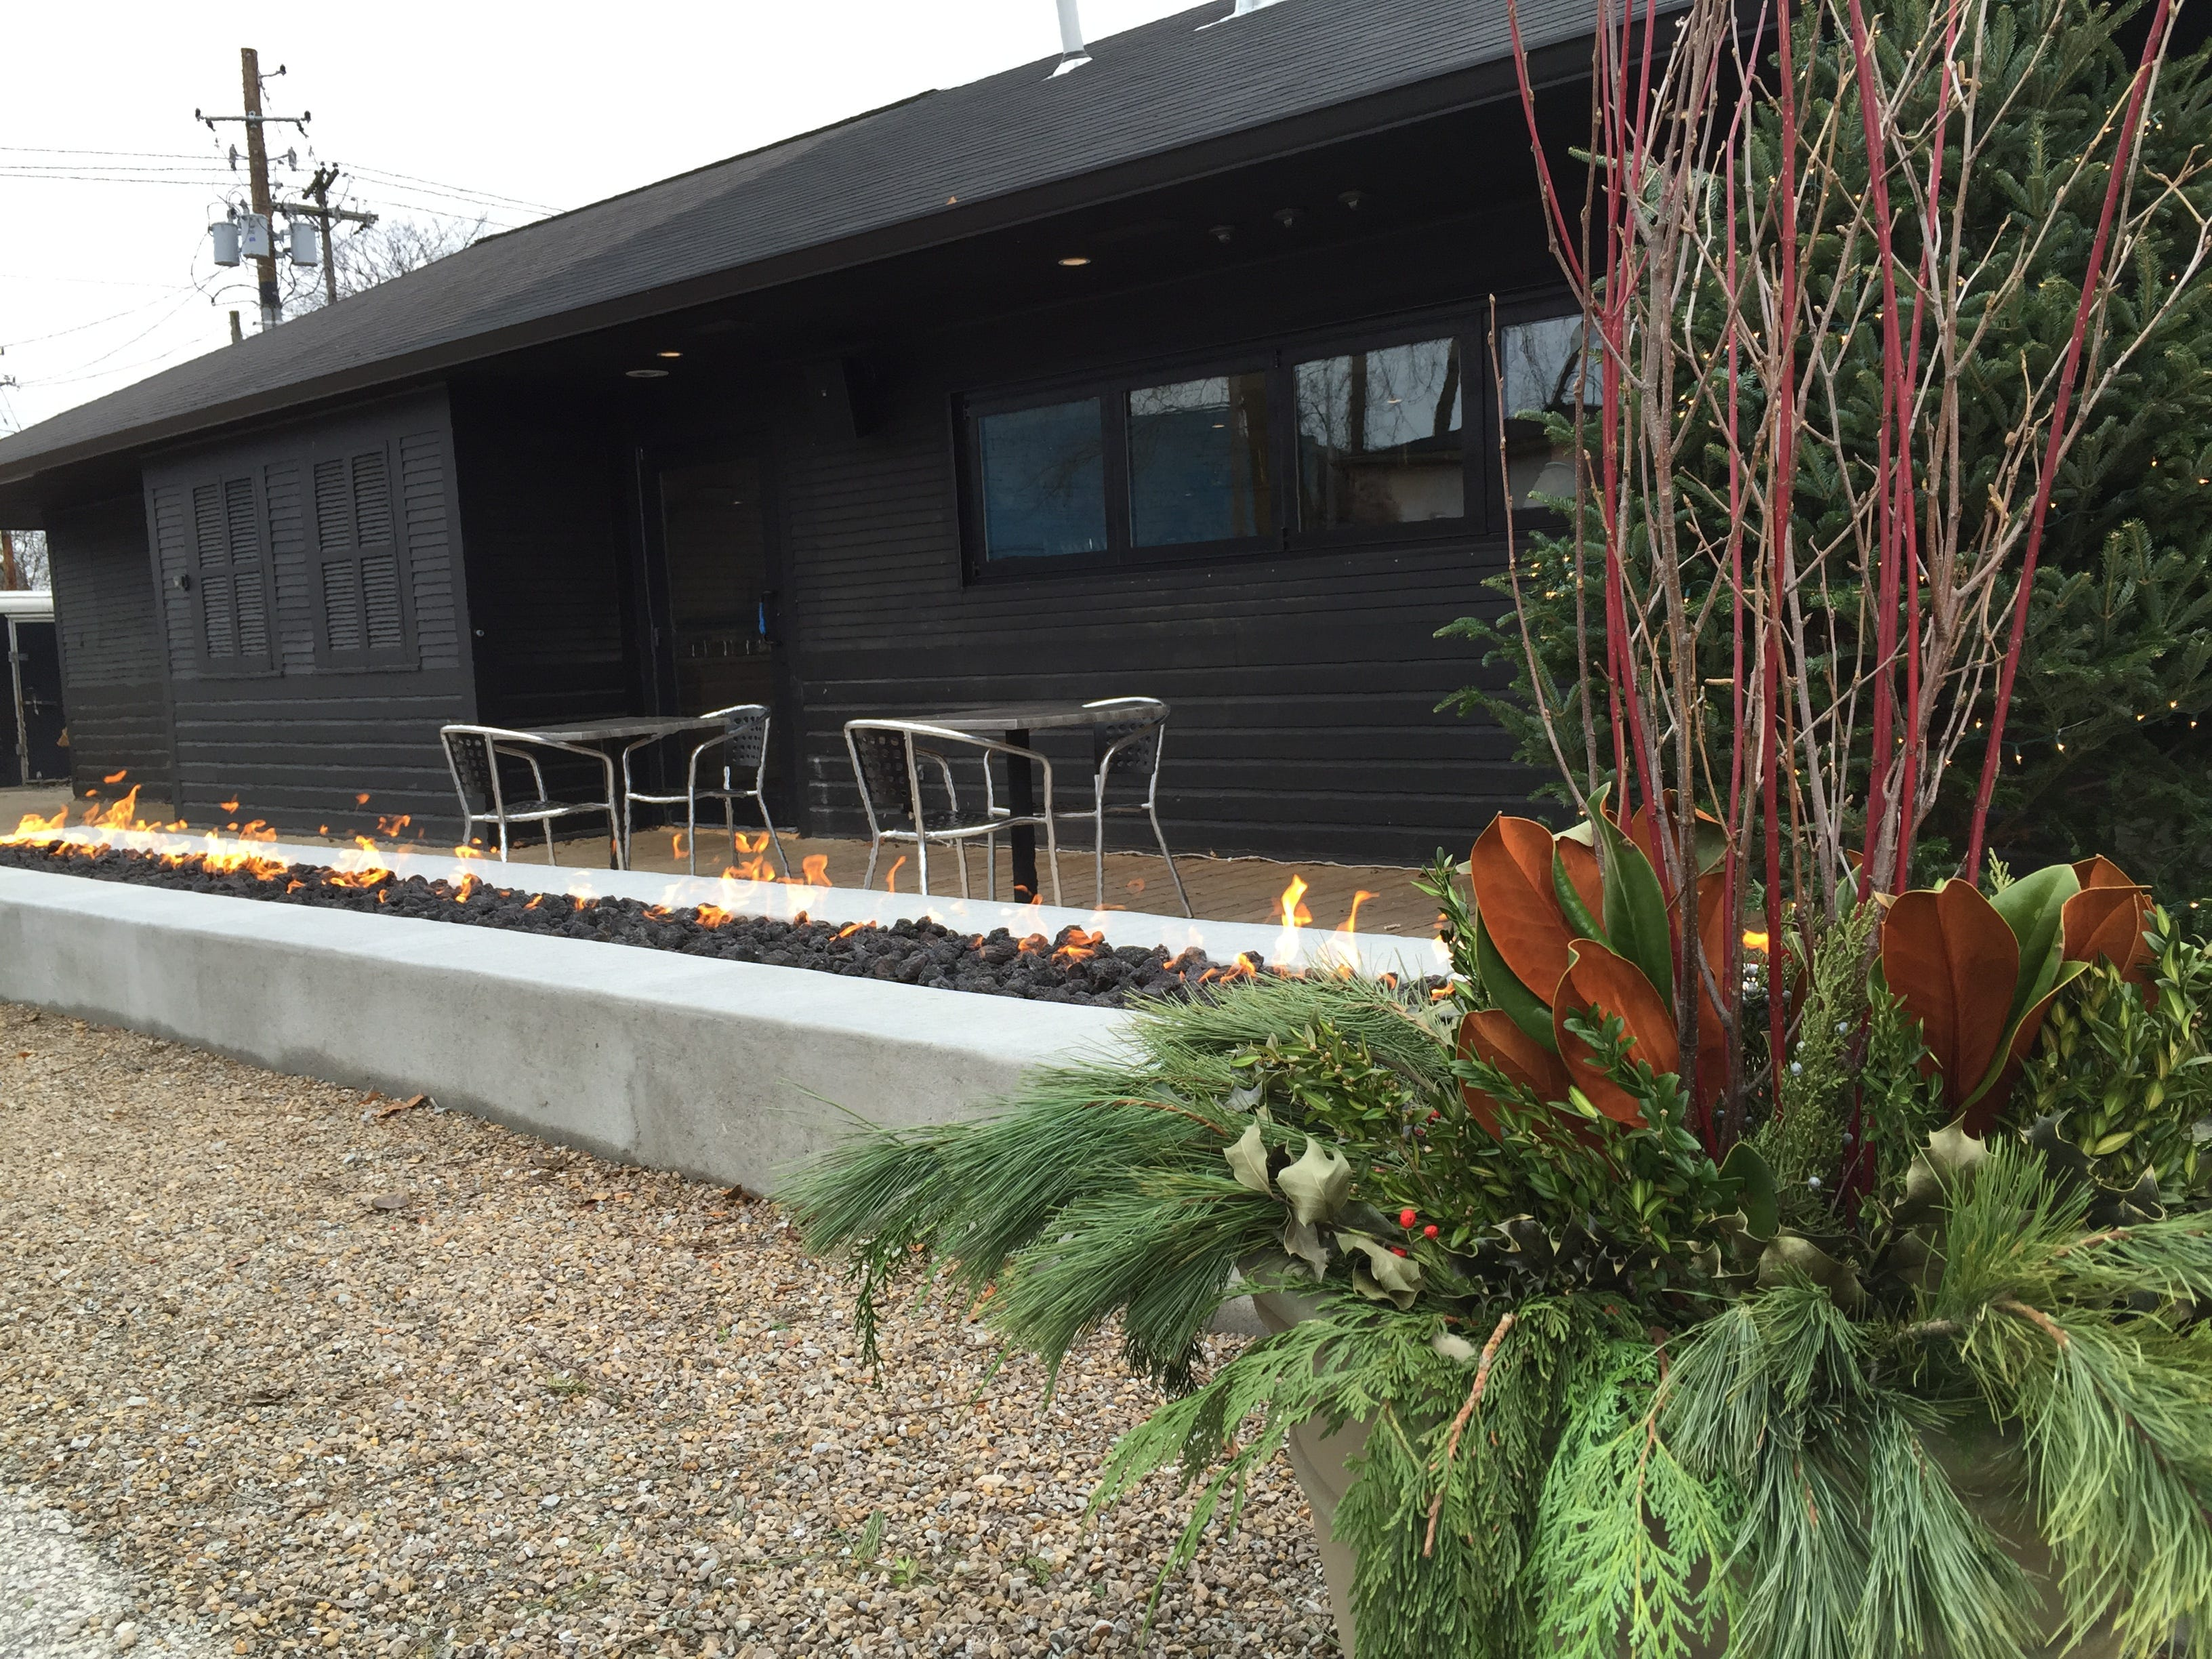 A Fireplace Warms The Patio At Public Greens.